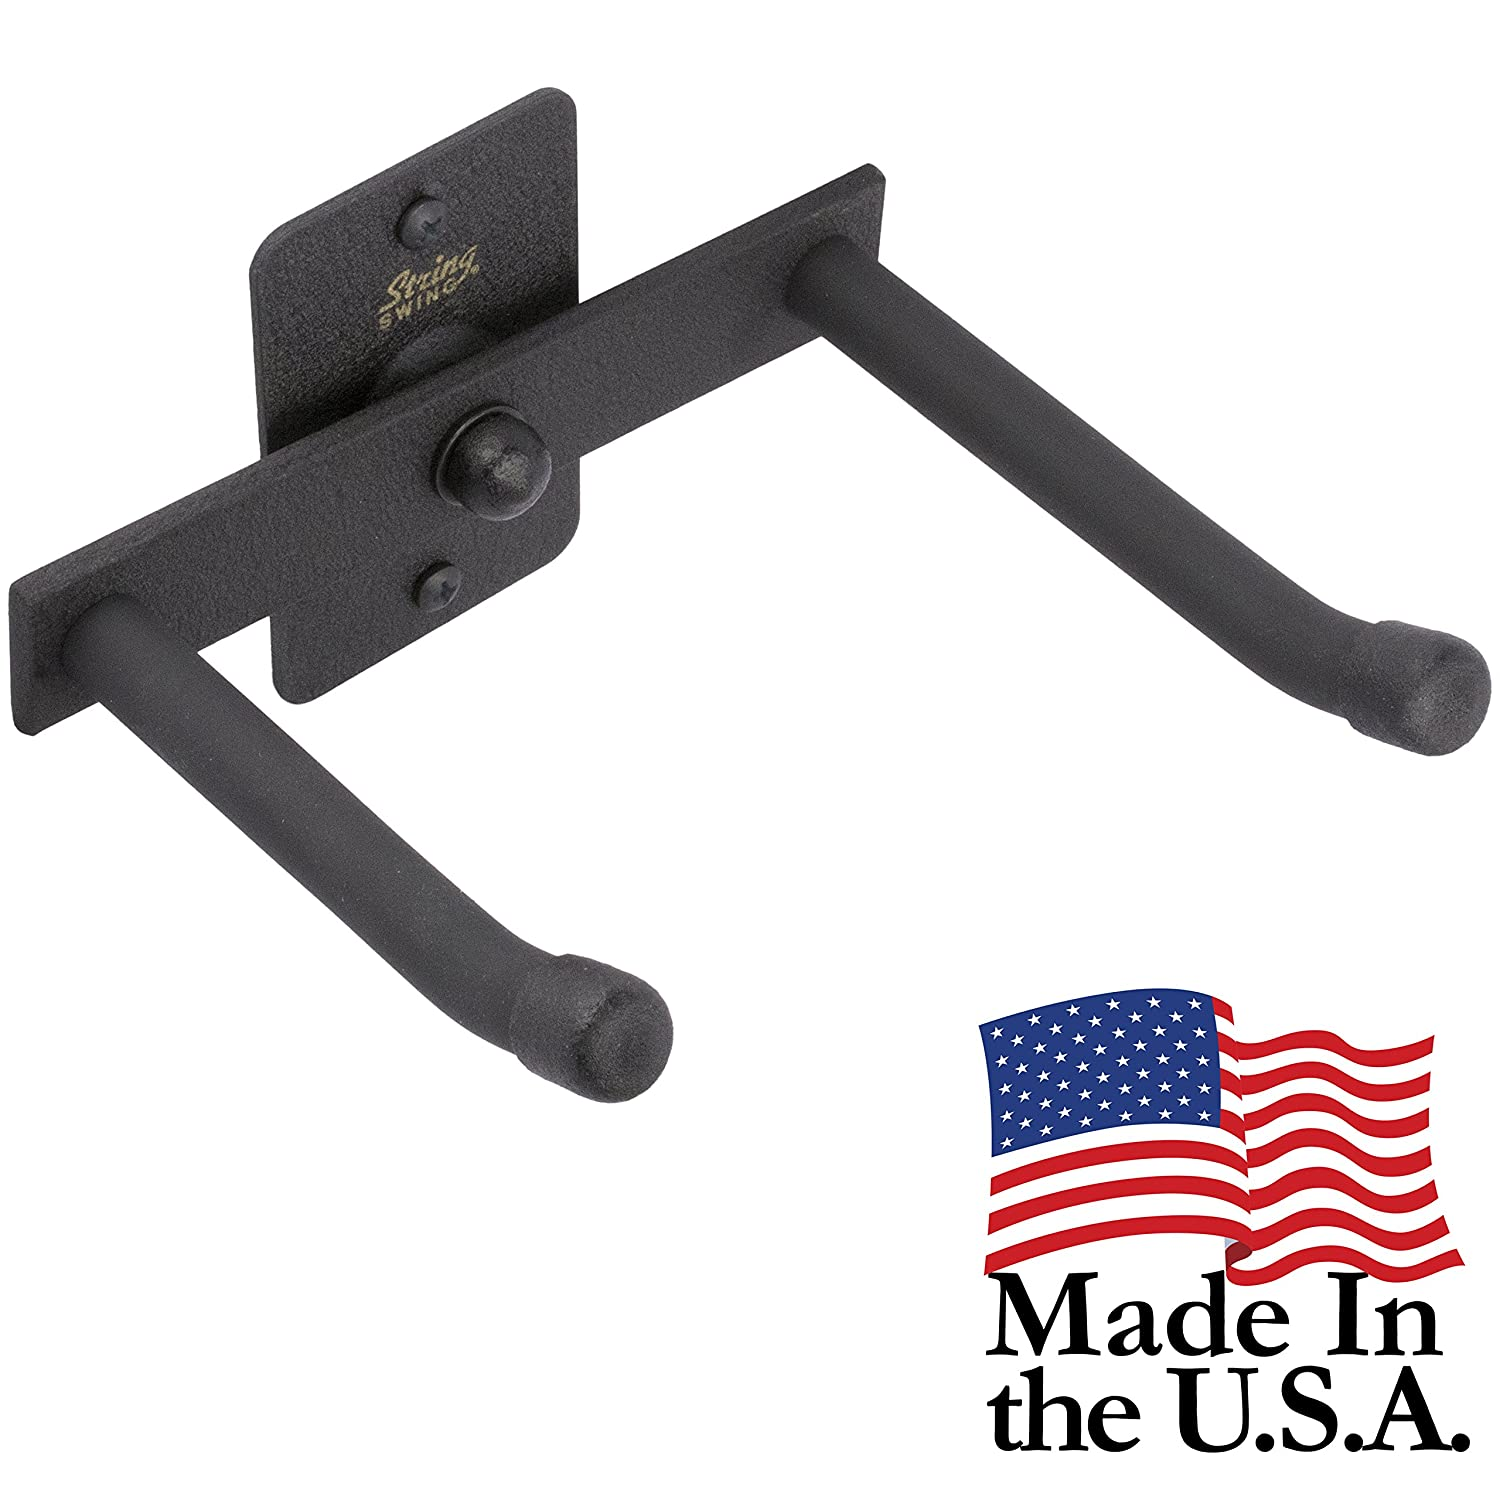 String Swing Horizontal Trumpet Holder - Stand for all Trumpets Including Piccolo and Pocket Trumpet- Stand Accessories Home or Studio Wall - Musical Instruments Safe without Hard Cases - Made in USA BHH12H-FW